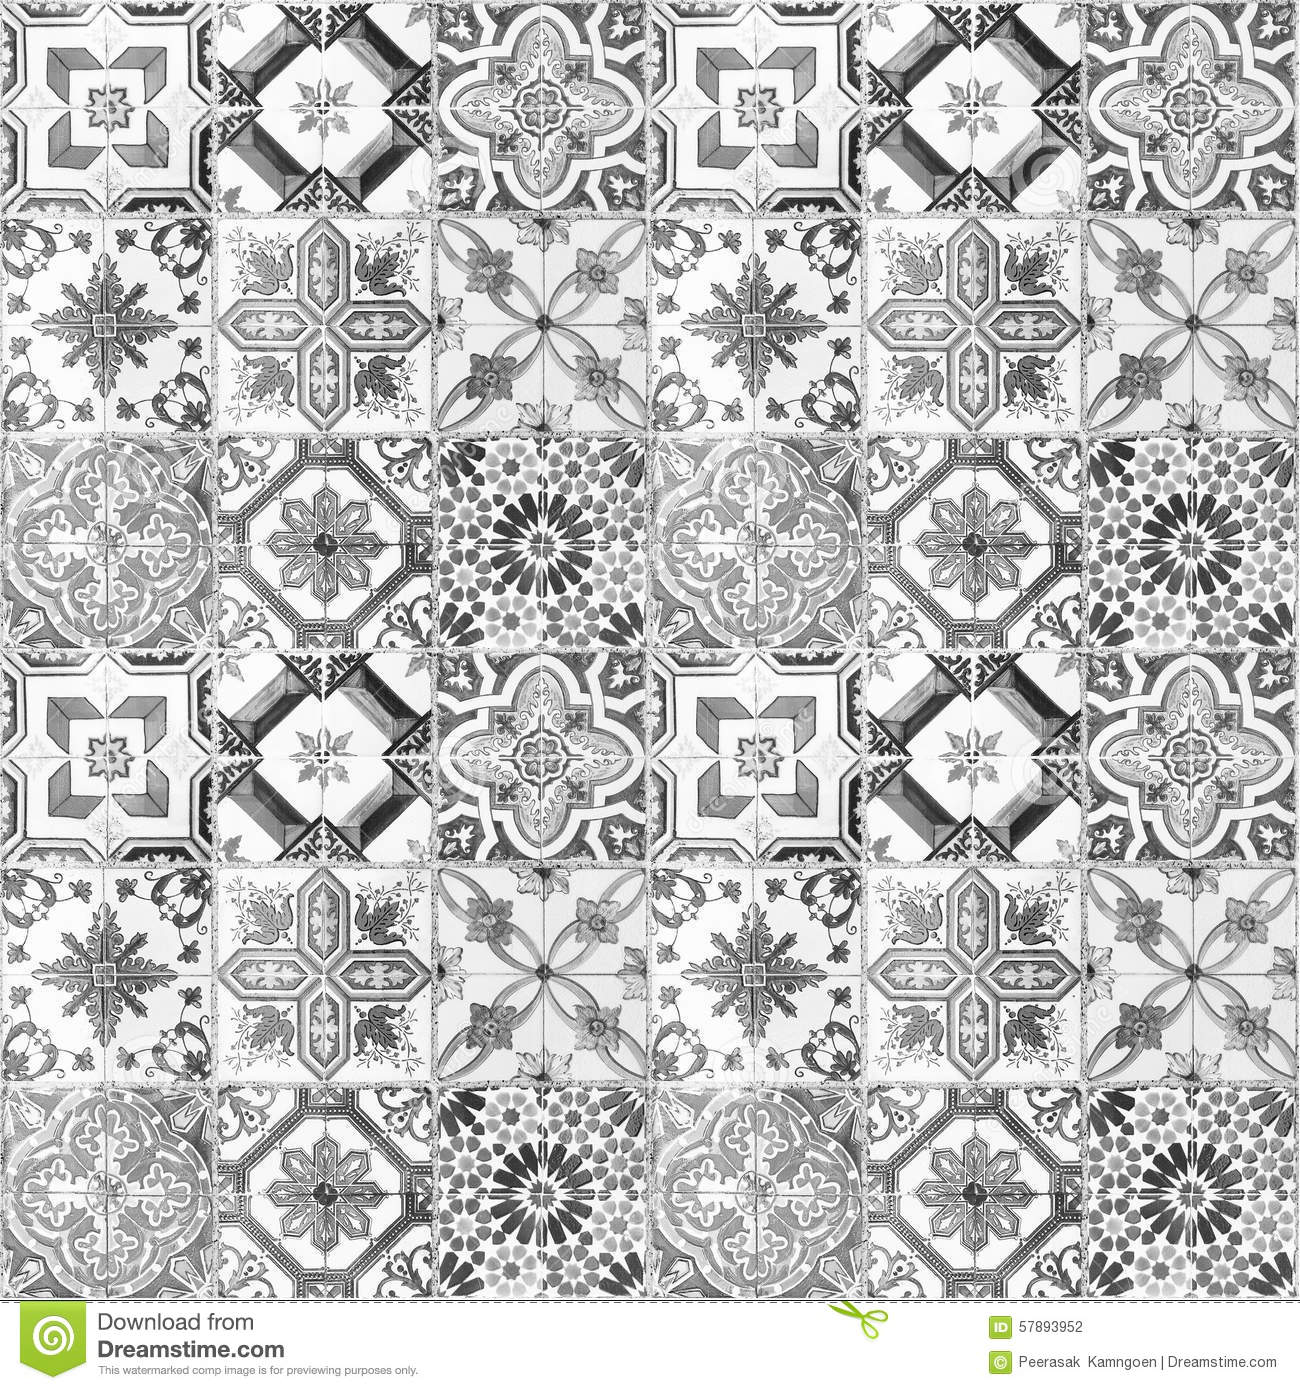 Designer White Abstract Ceramic Wall Tile Pack Of 8 L: Beautiful Old Ceramic Tiles Patterns Stock Illustration